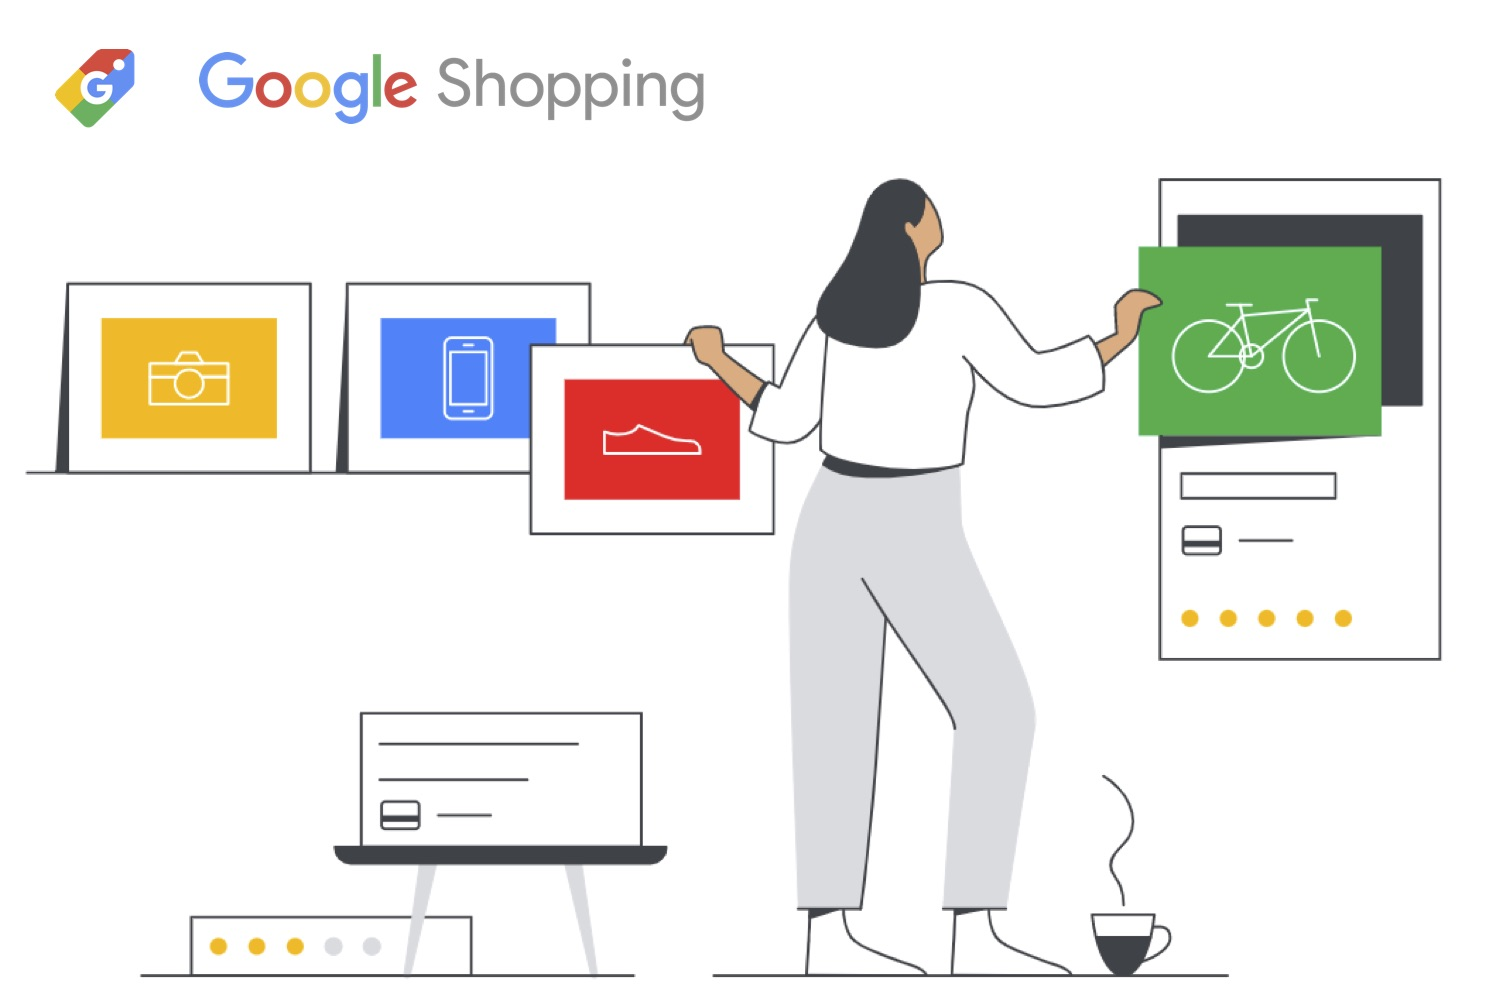 google shopping 2021, google shopping